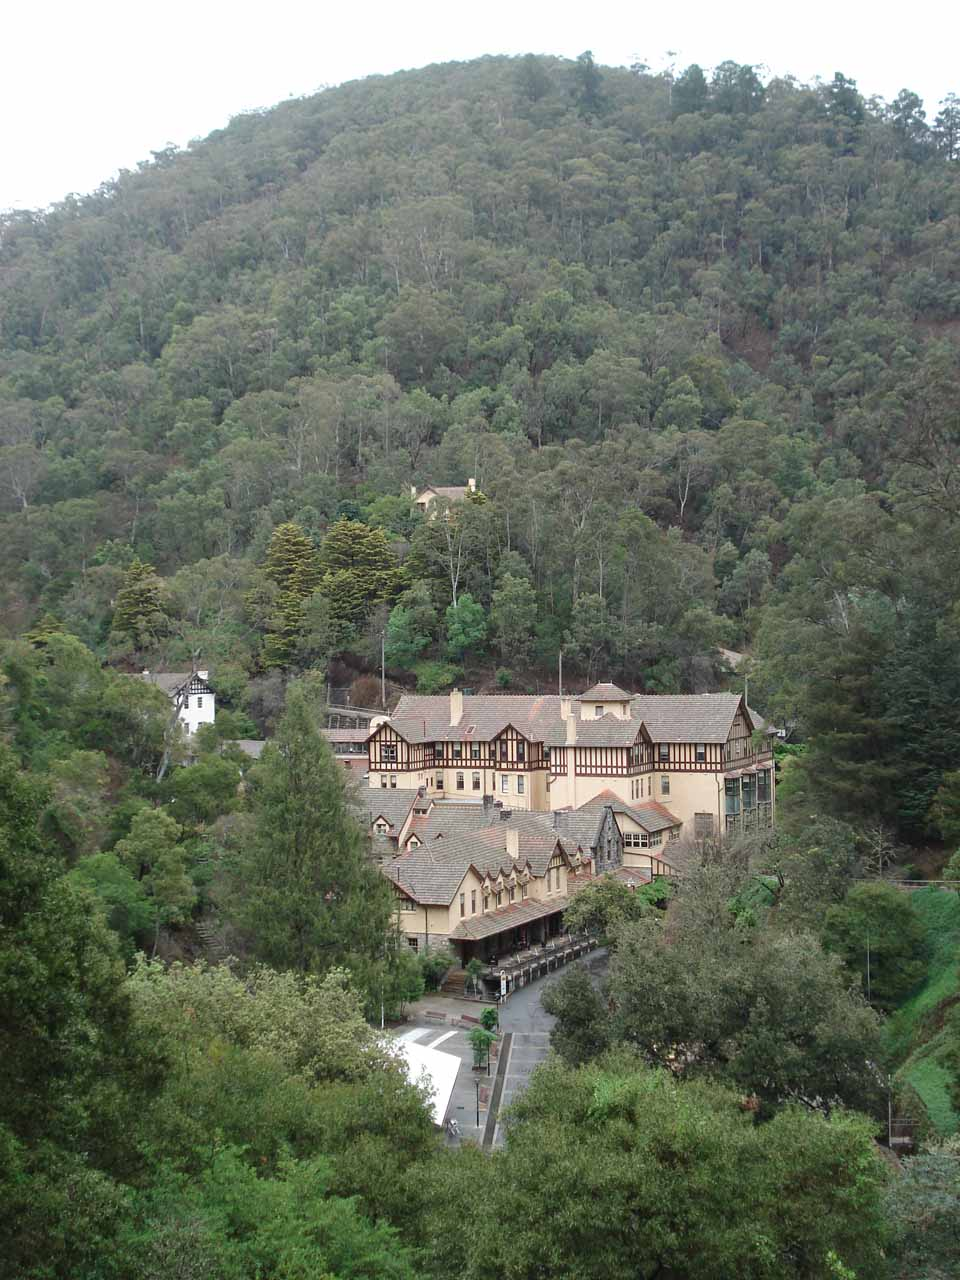 Looking down at the visitor center for the Jenolan Caves